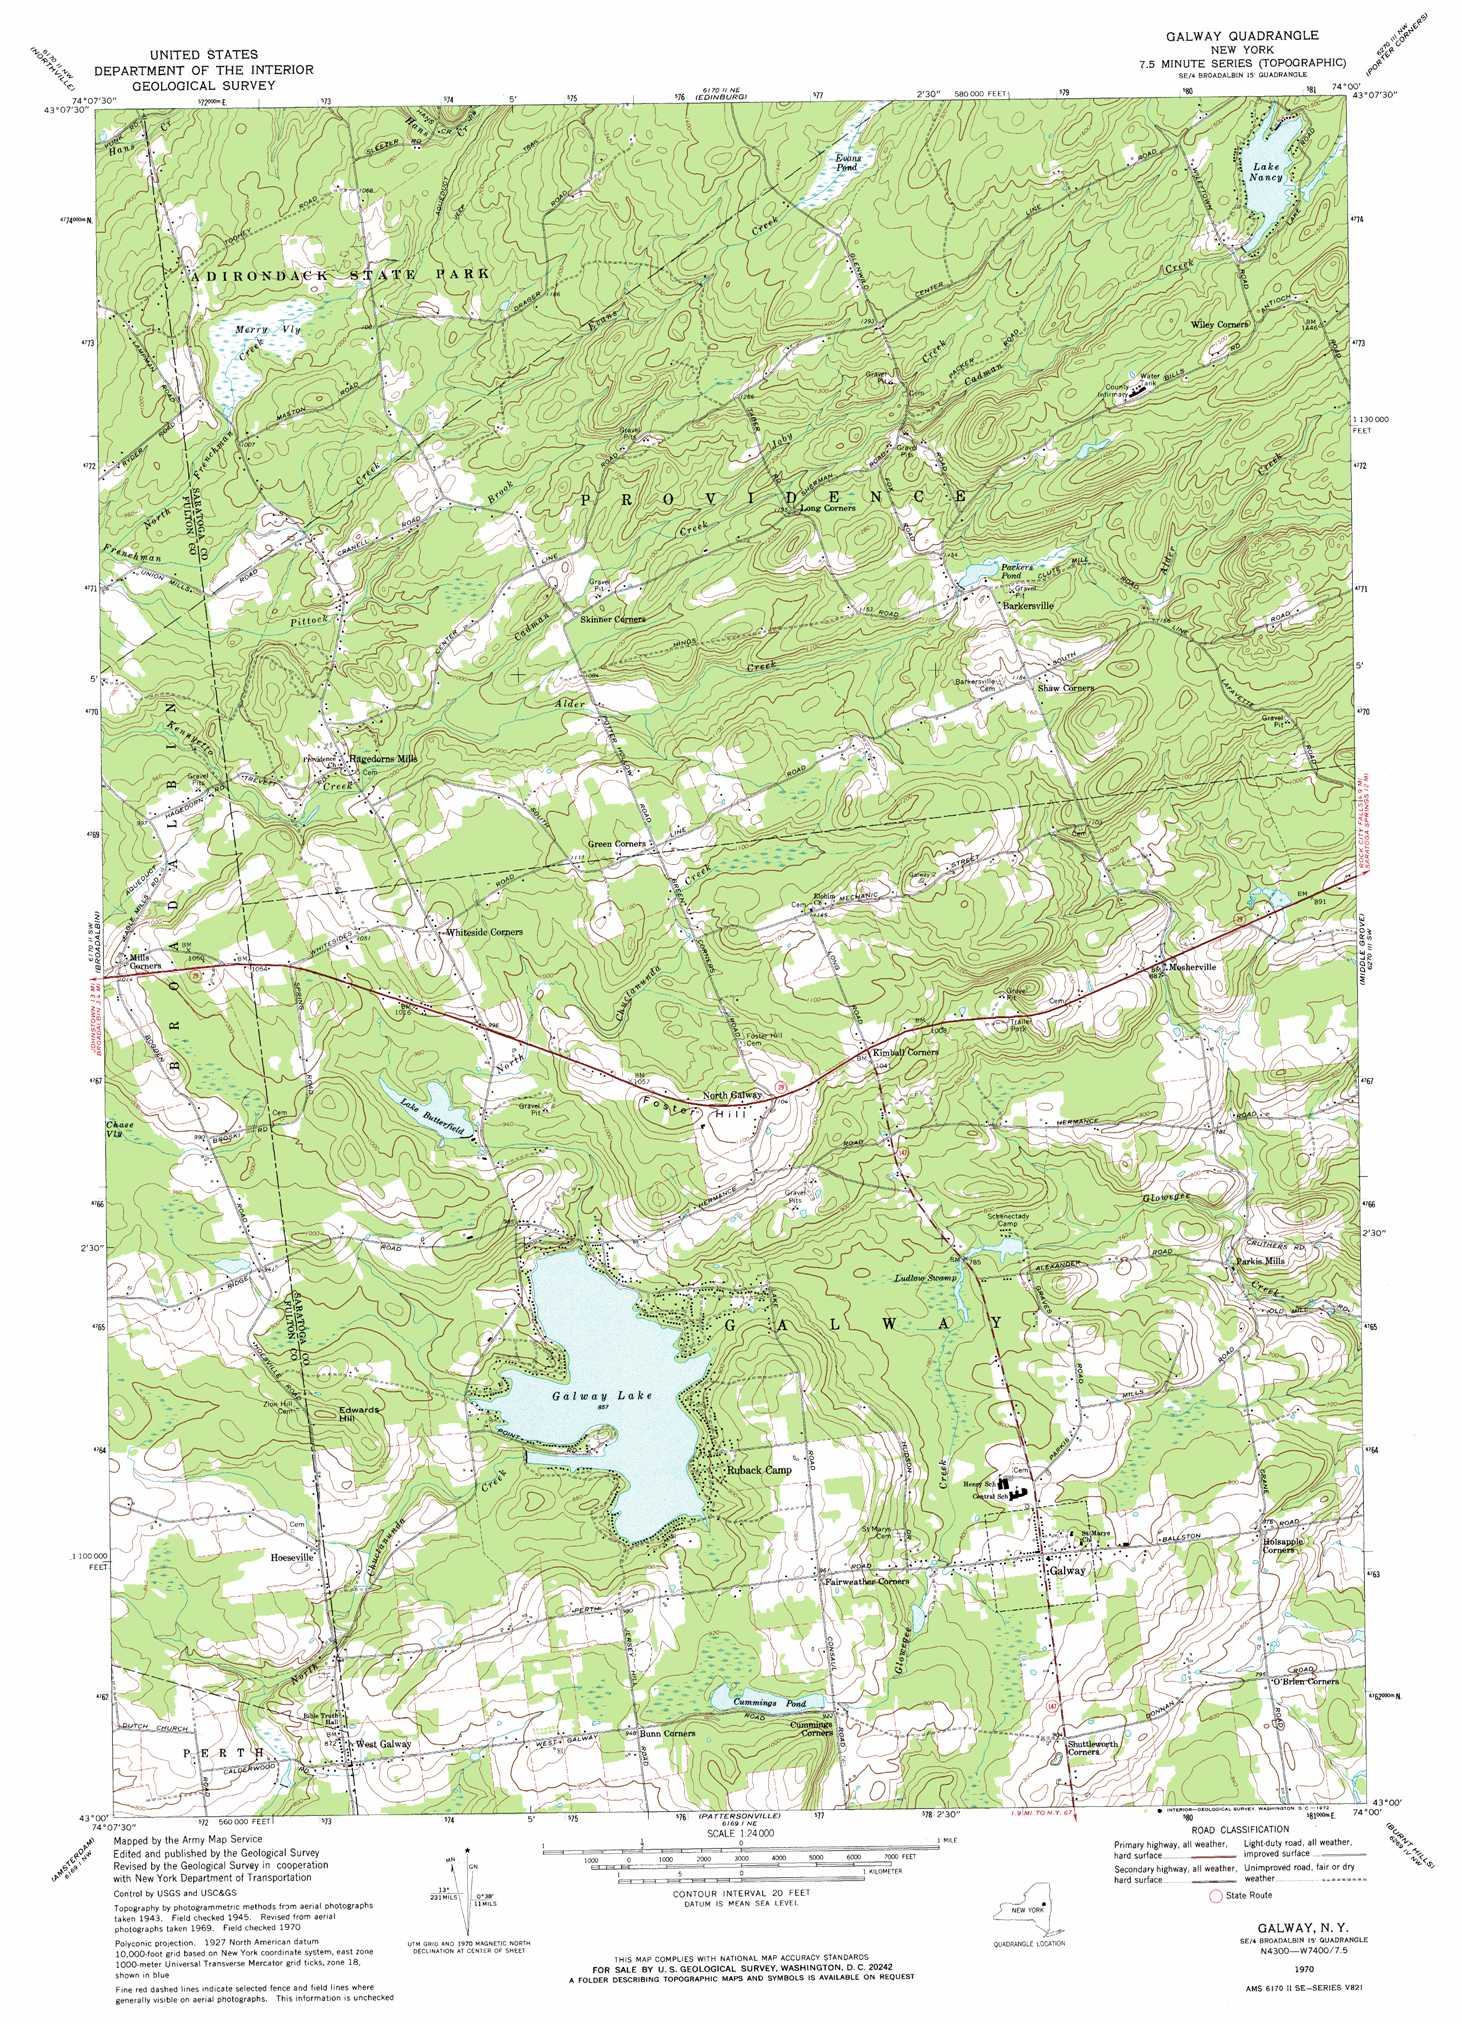 Galway topographic map, NY - USGS Topo Quad 43074a1